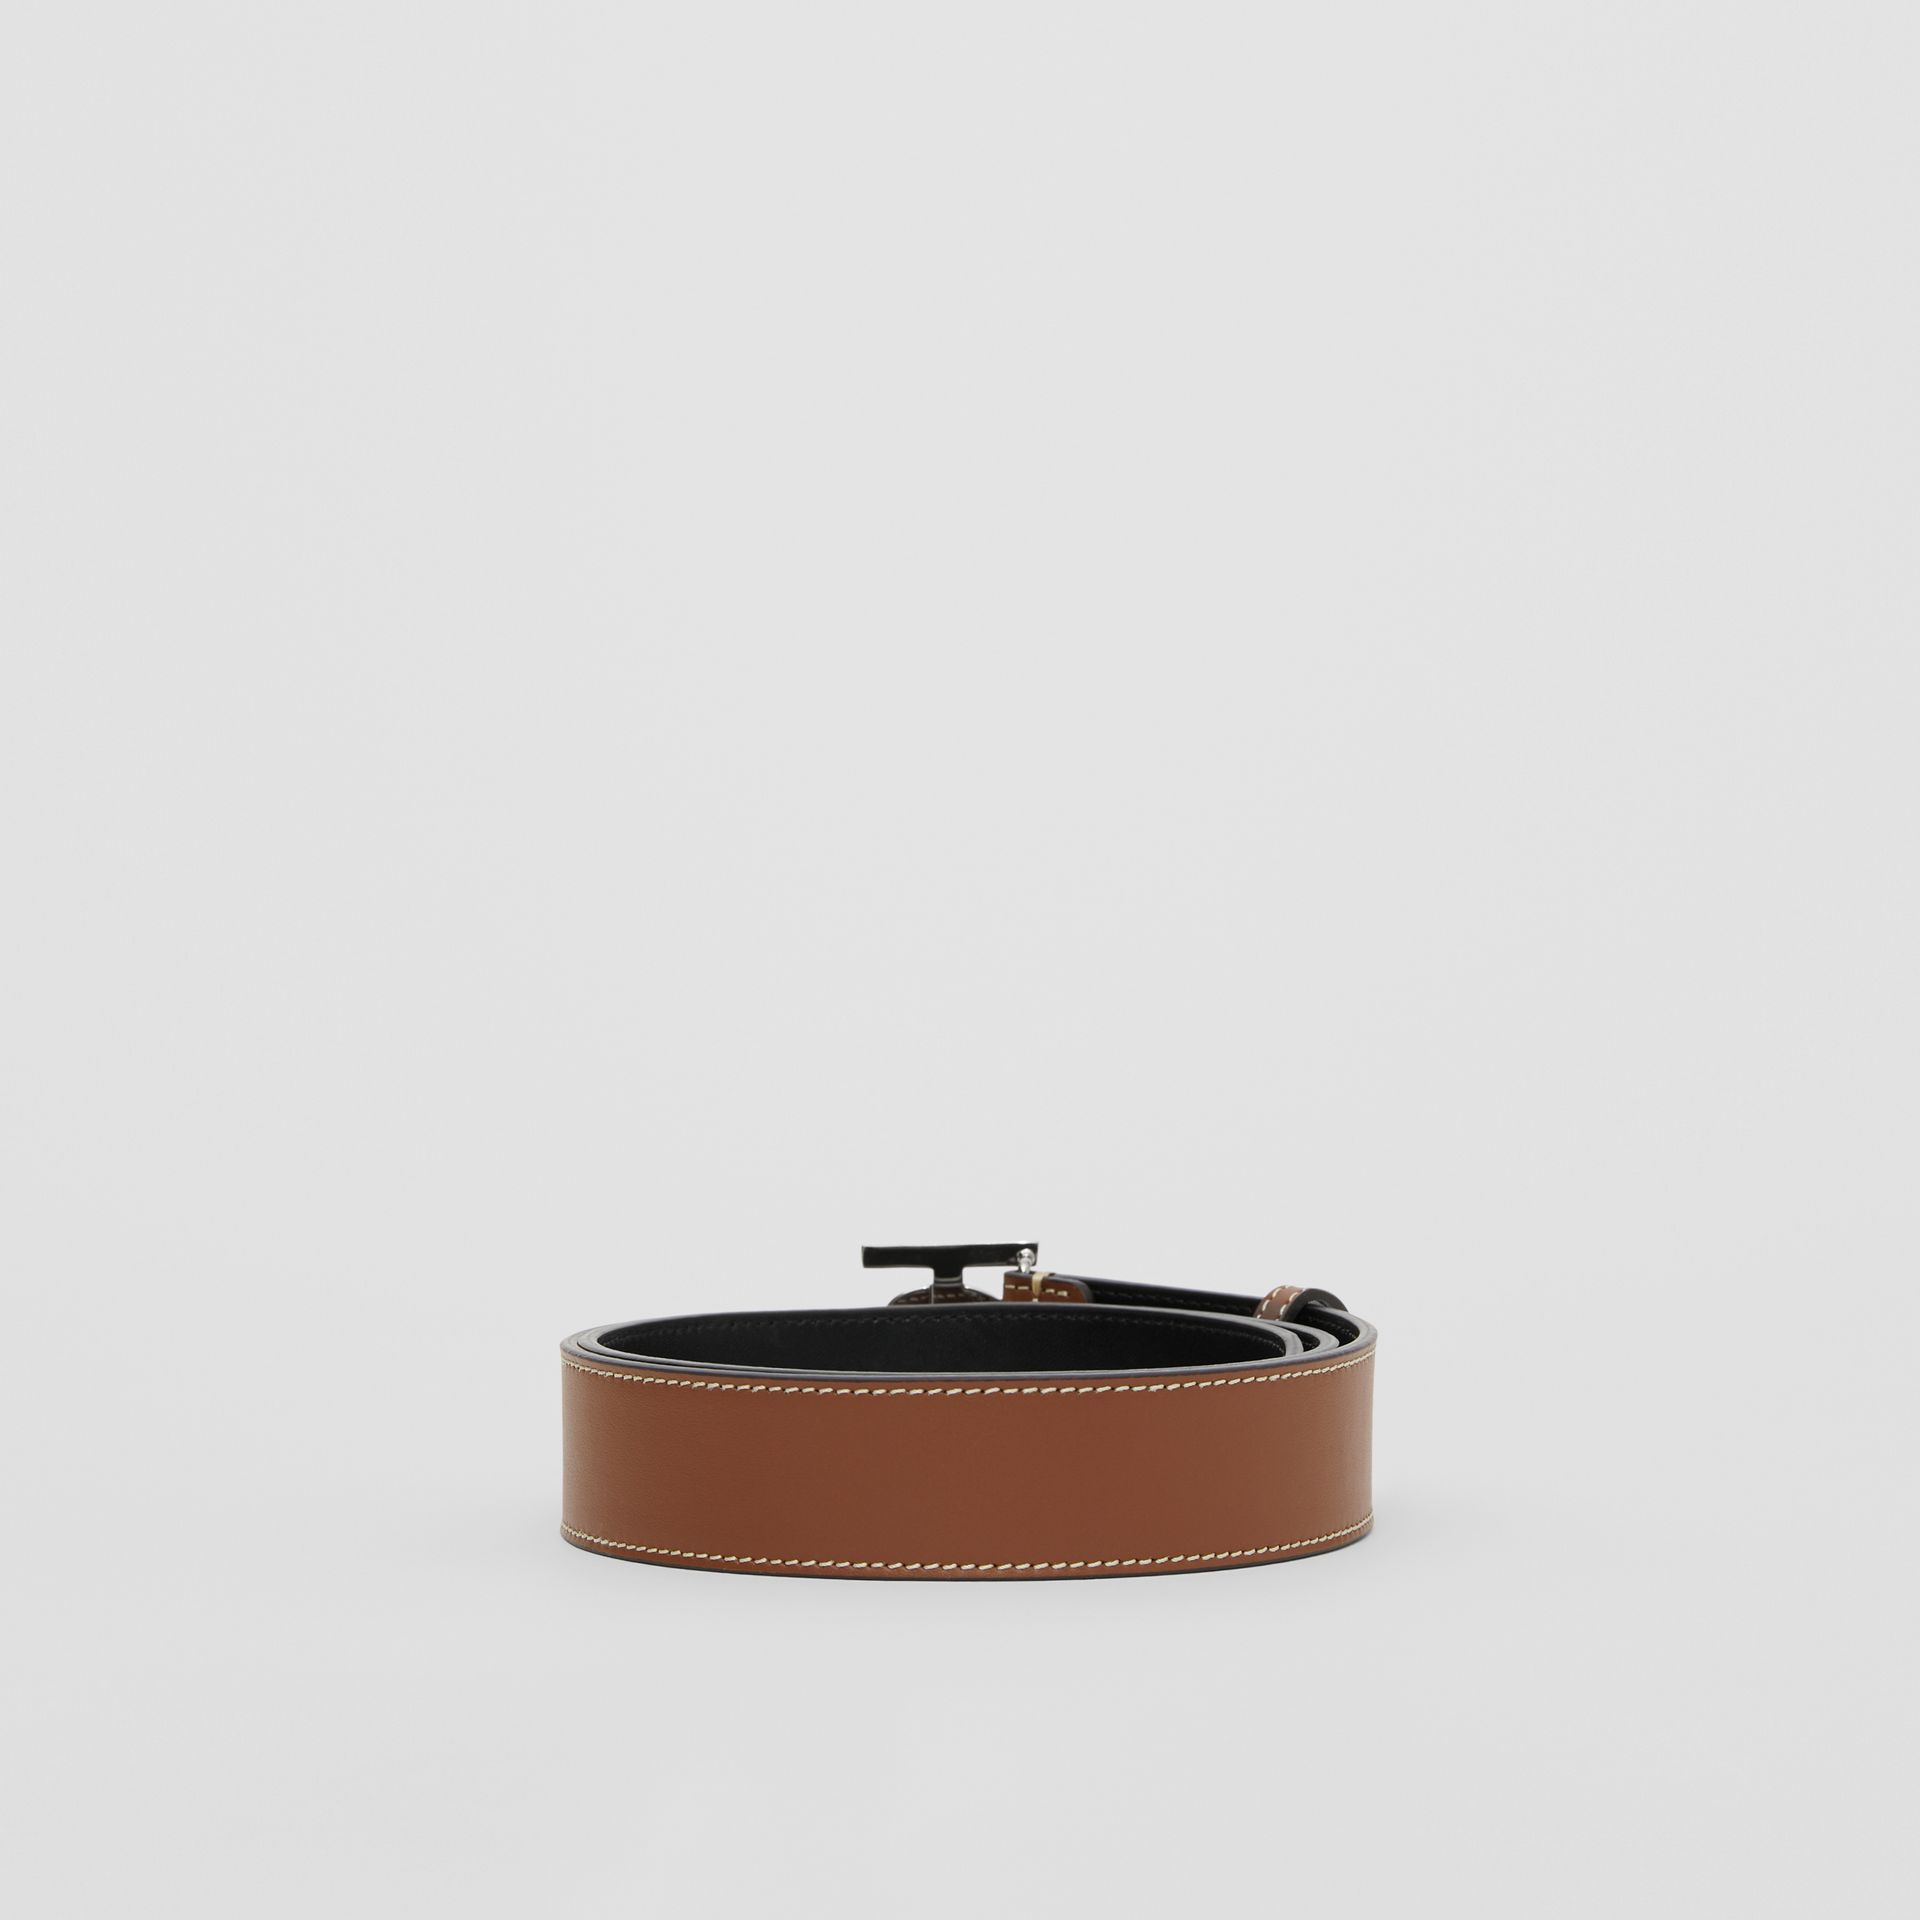 Monogram Motif Topstitched Leather Belt in Tan - Men | Burberry - gallery image 4